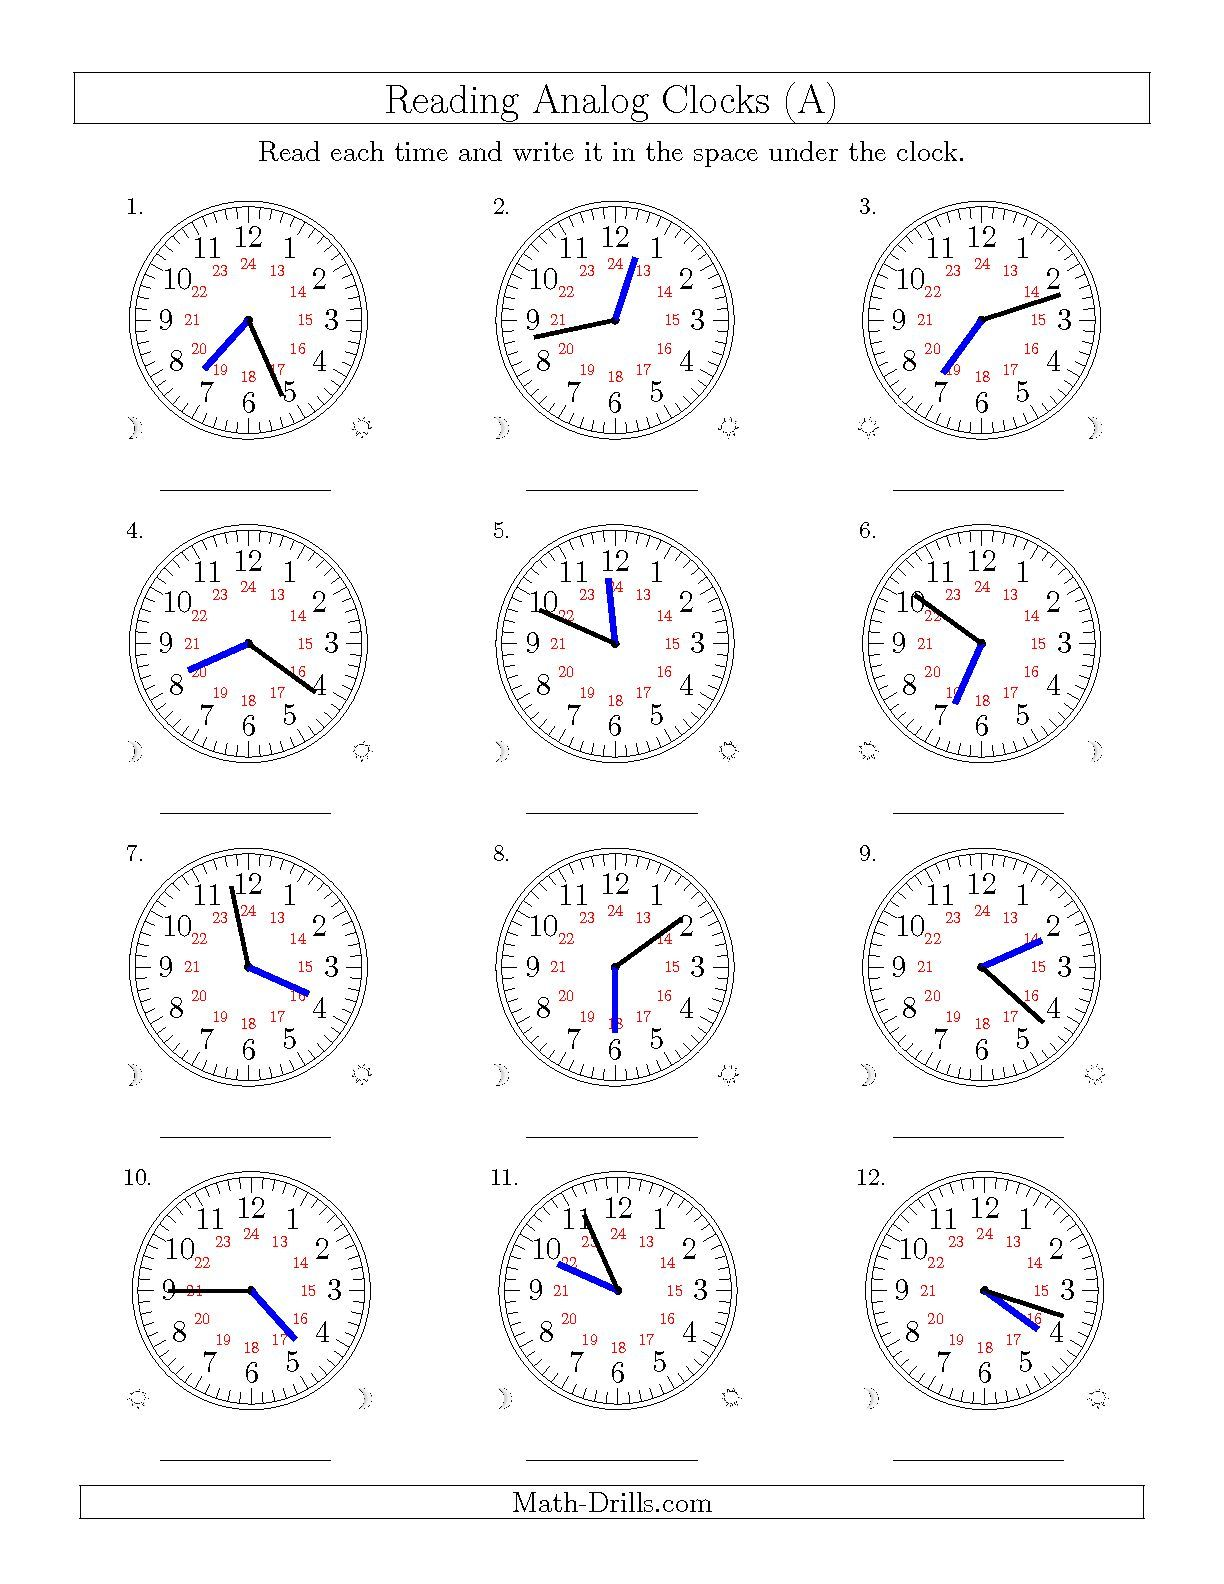 The Reading Time On 24 Hourog Clocks In 1 Minute